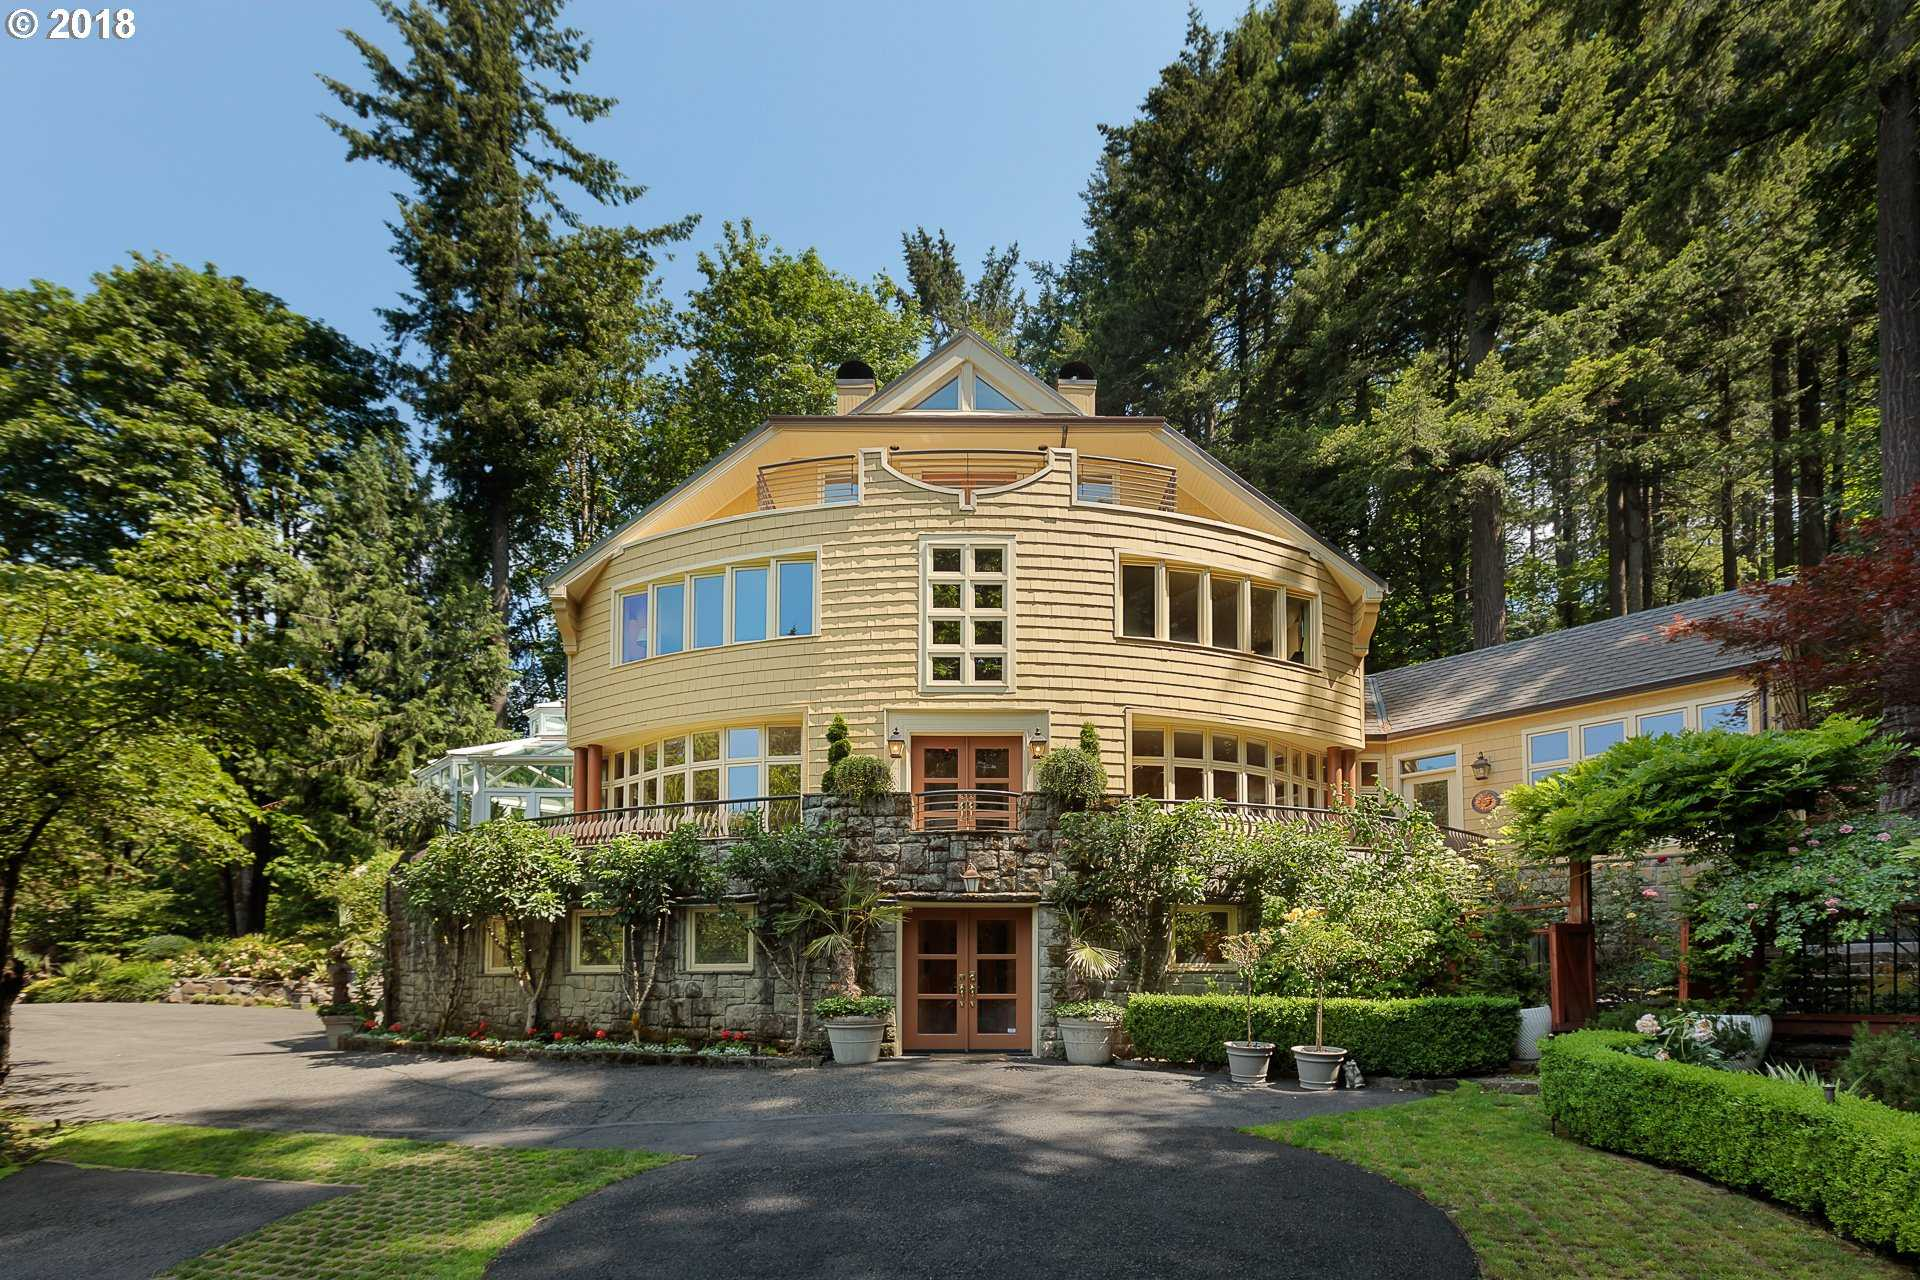 $1,670,000 - 4Br/4Ba -  for Sale in Forest Park, Portland